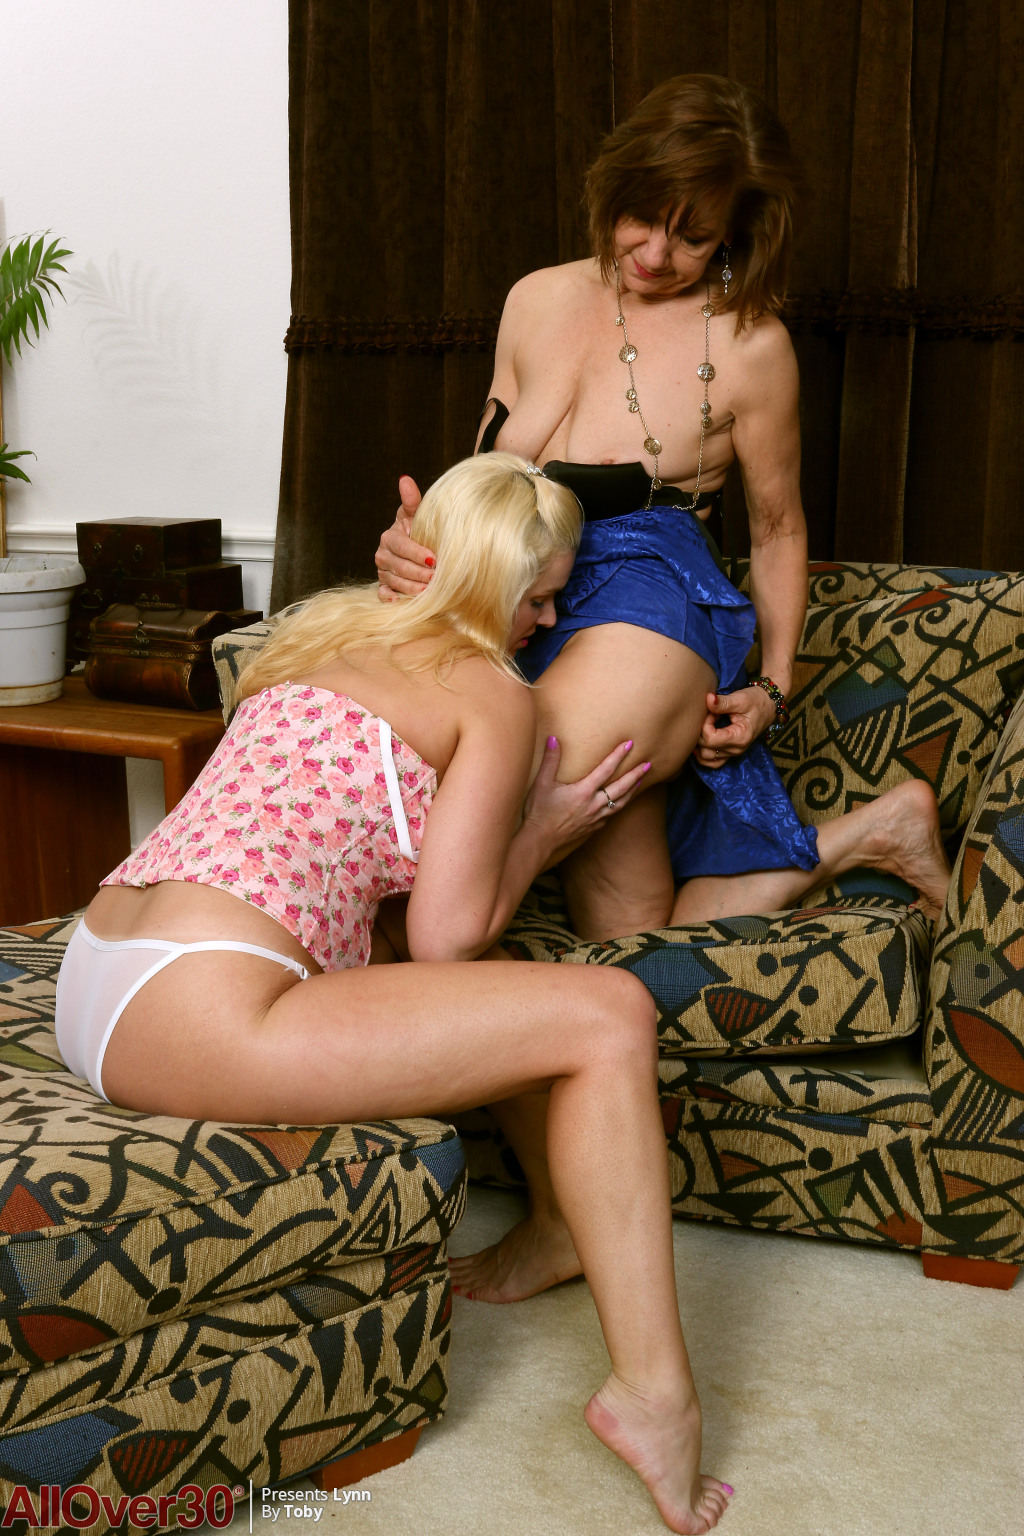 lynn-and-april-key-lesbian-lust-06